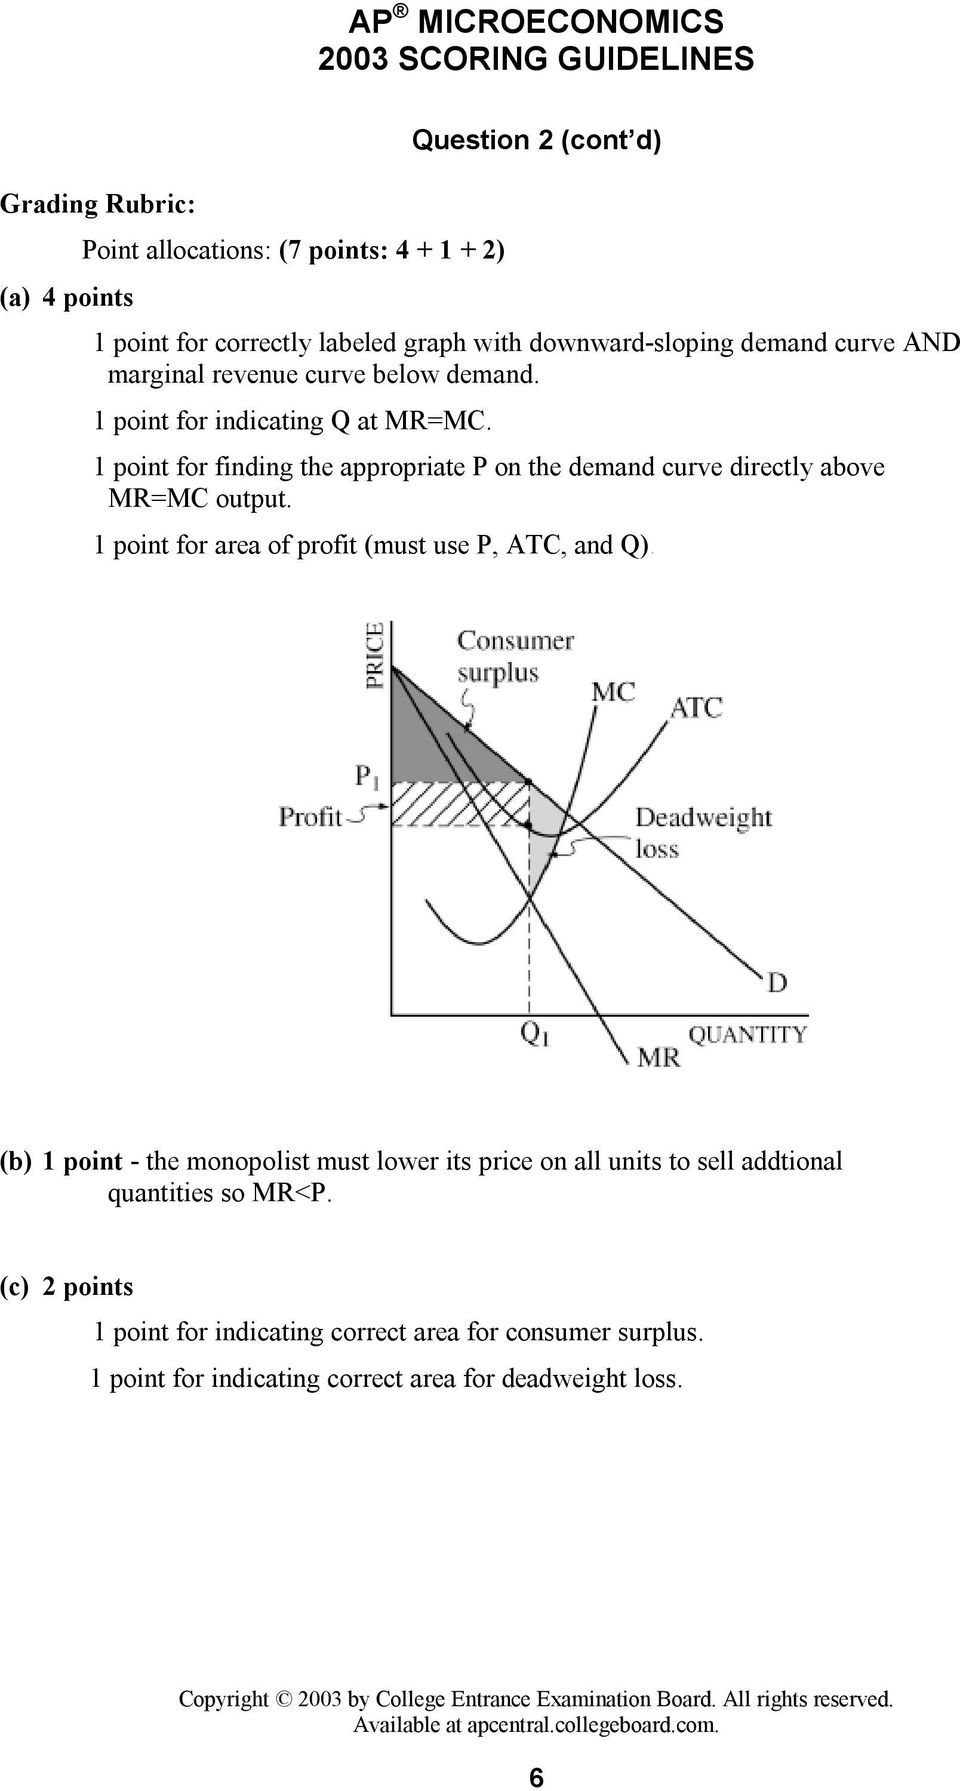 1 point for finding the appropriate P on the demand curve directly above MR=MC output. 1 point for area of profit (must use P, ATC, and Q).